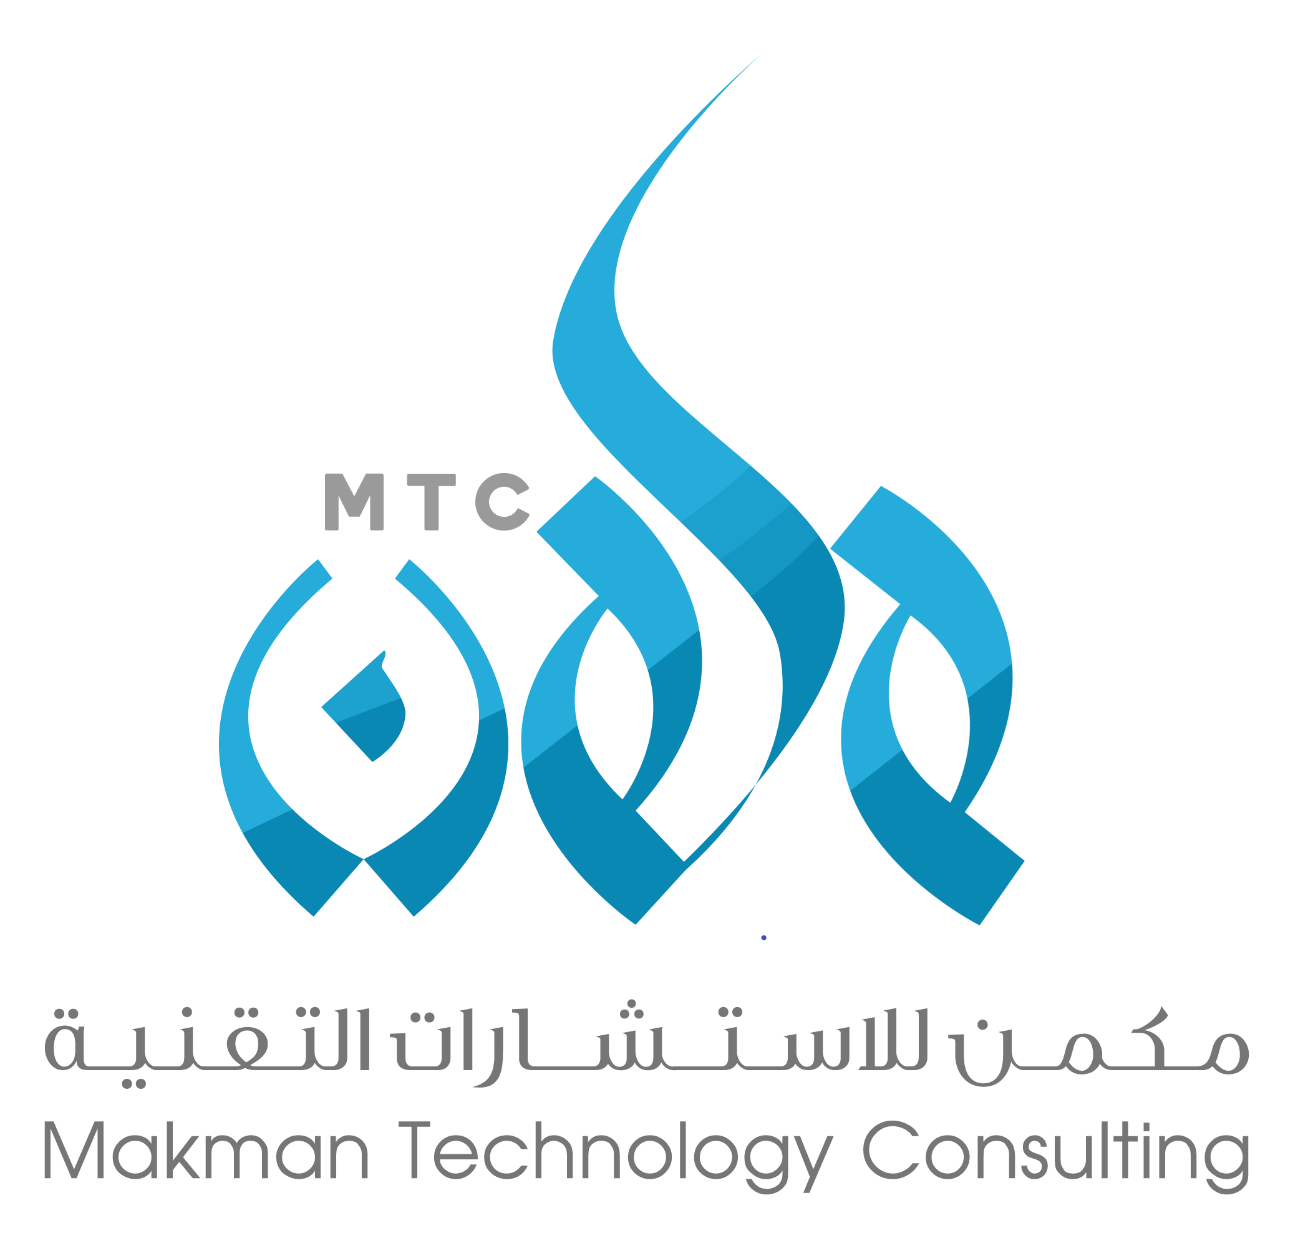 Makman Technology Consulting